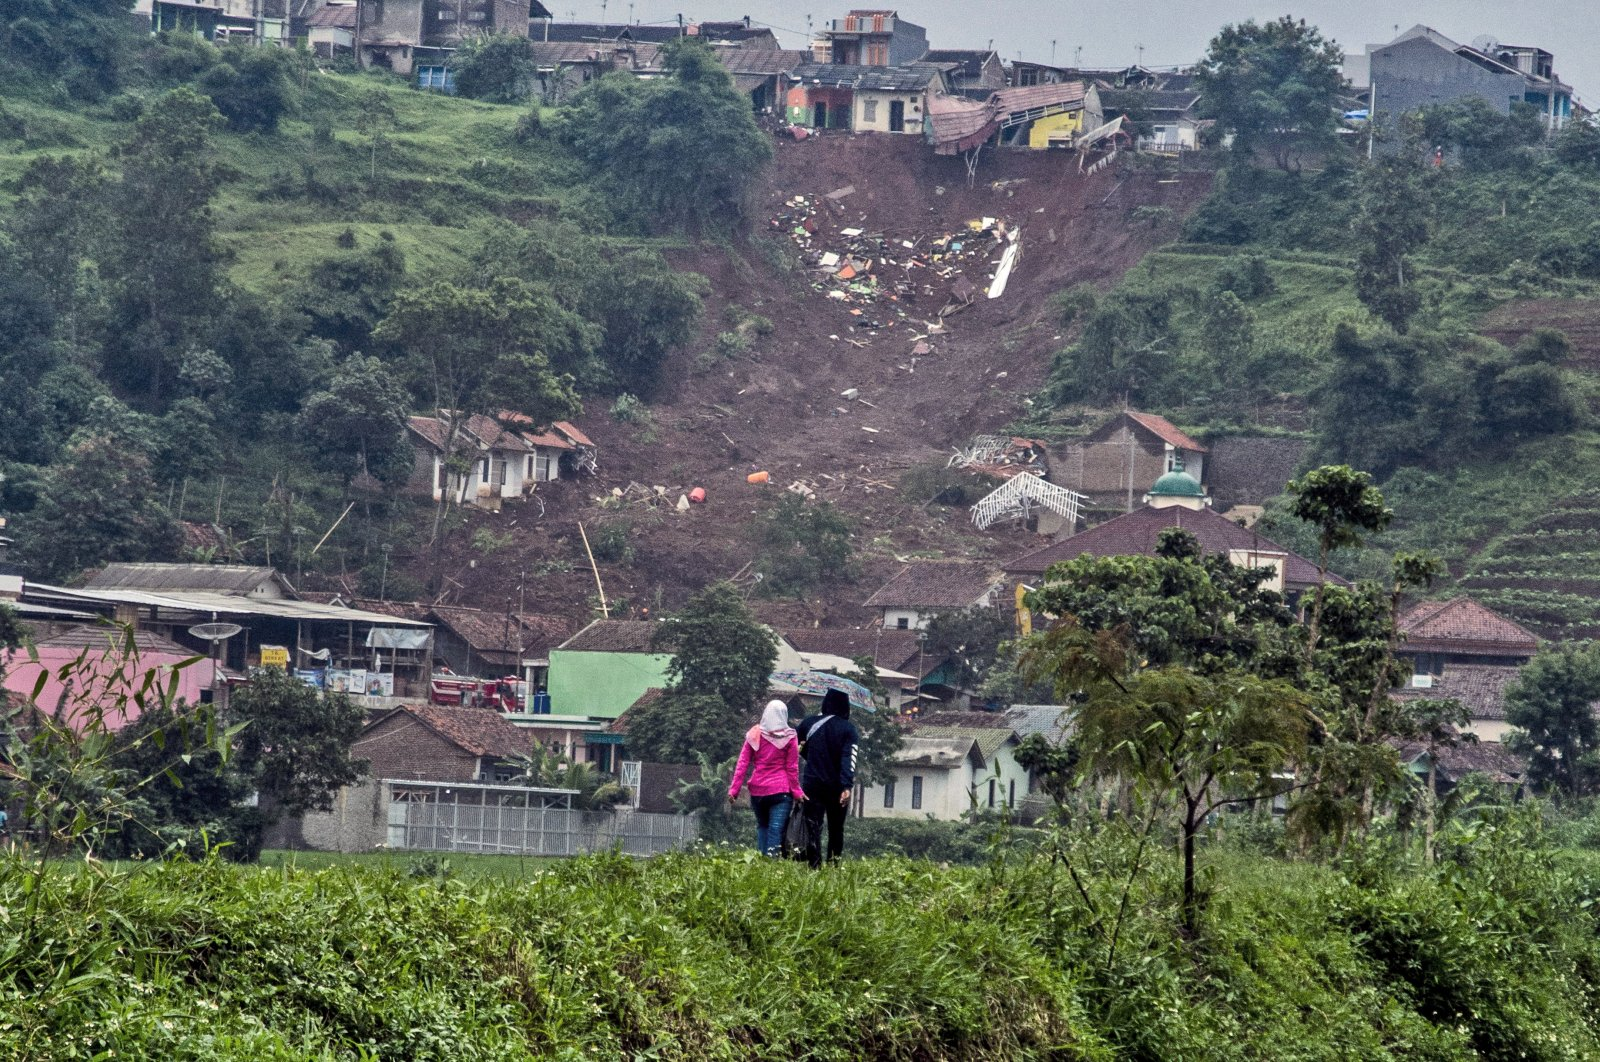 People walk past the site of a village that was hit by landslides on Sunday, in Sumedang, West Java, Indonesia, Jan. 11, 2021. (AP Photo)